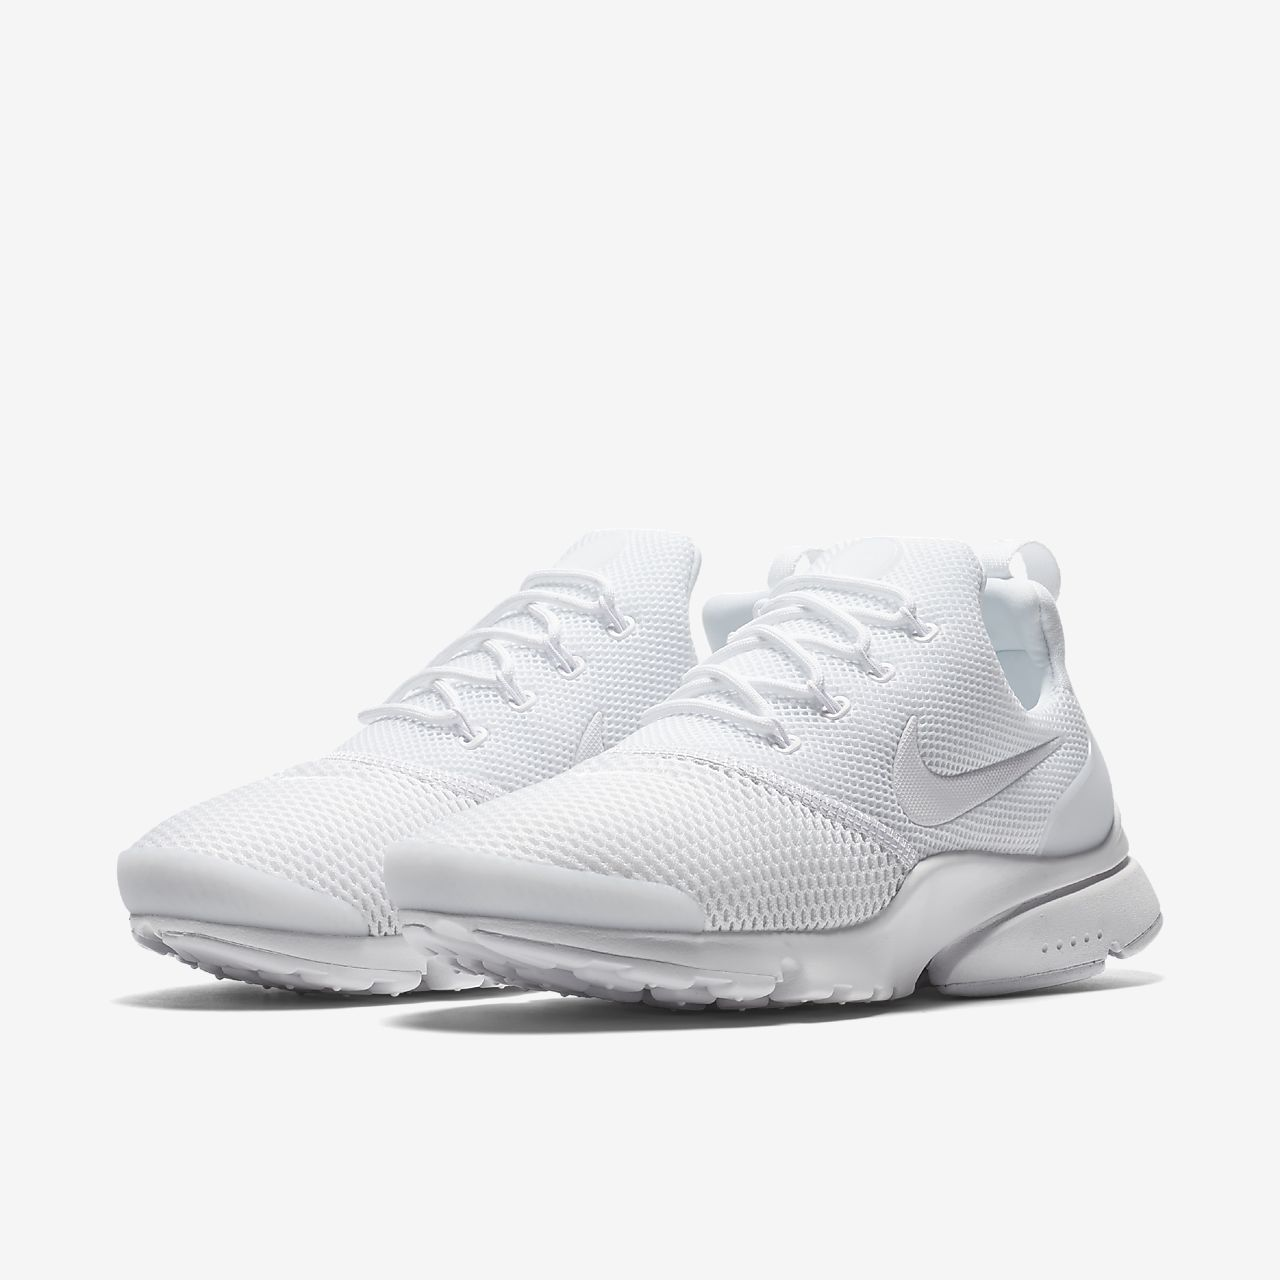 ... Nike Presto Fly Women's Shoe